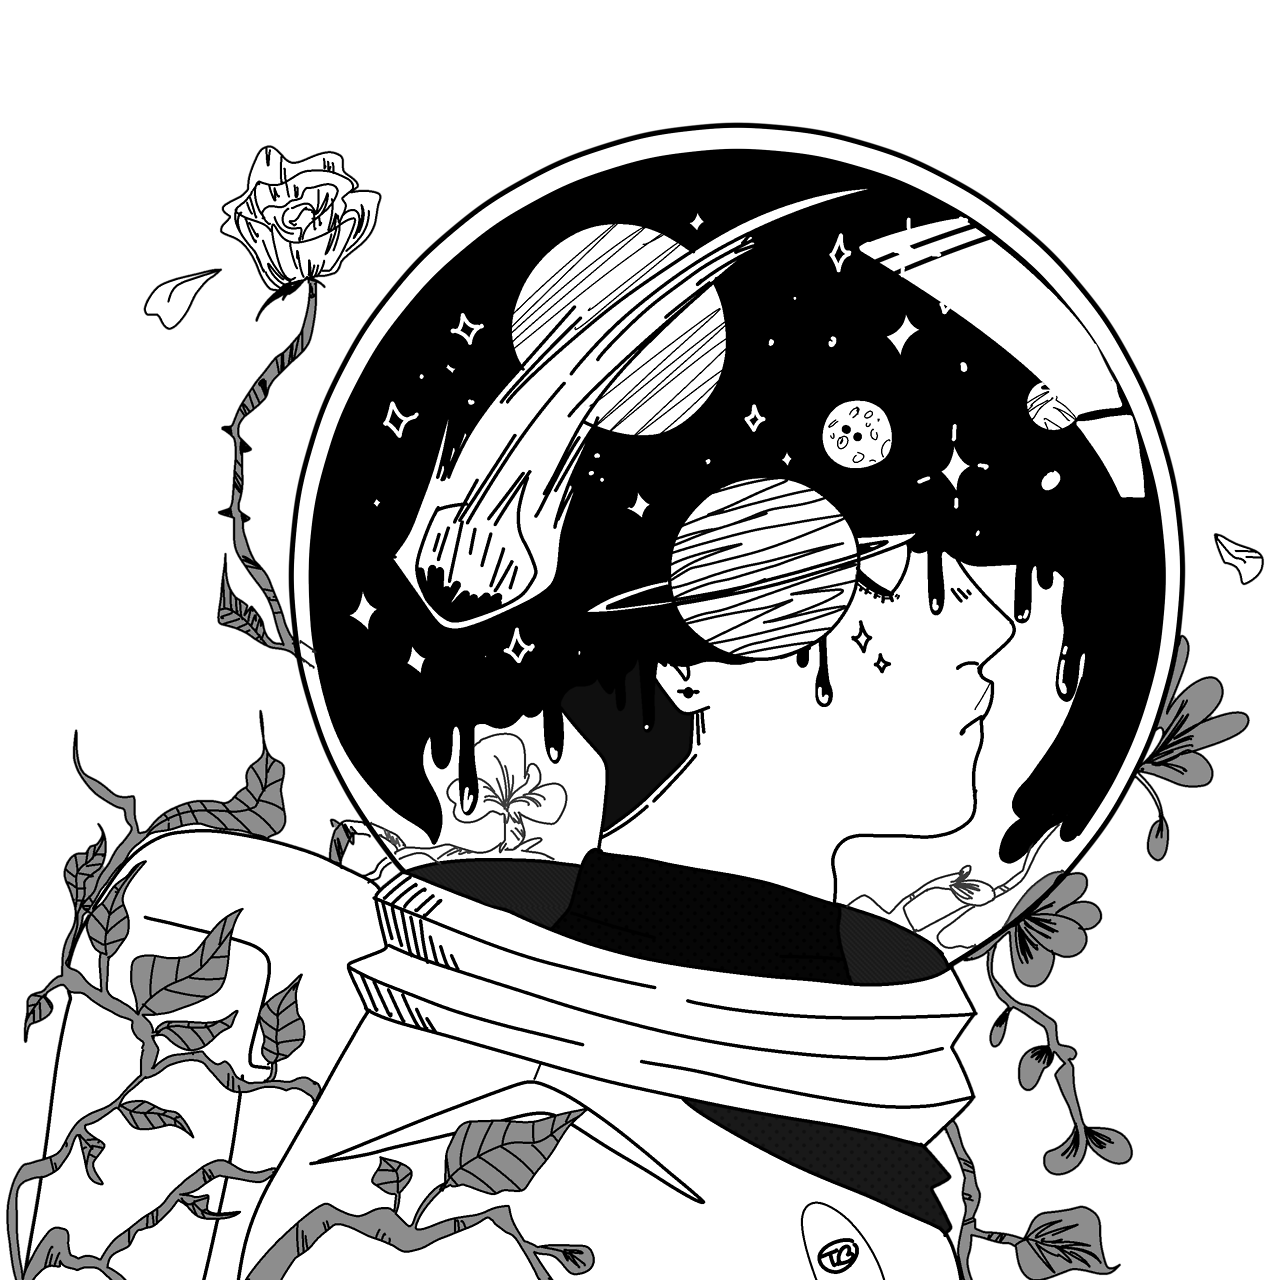 Space drawing clipart